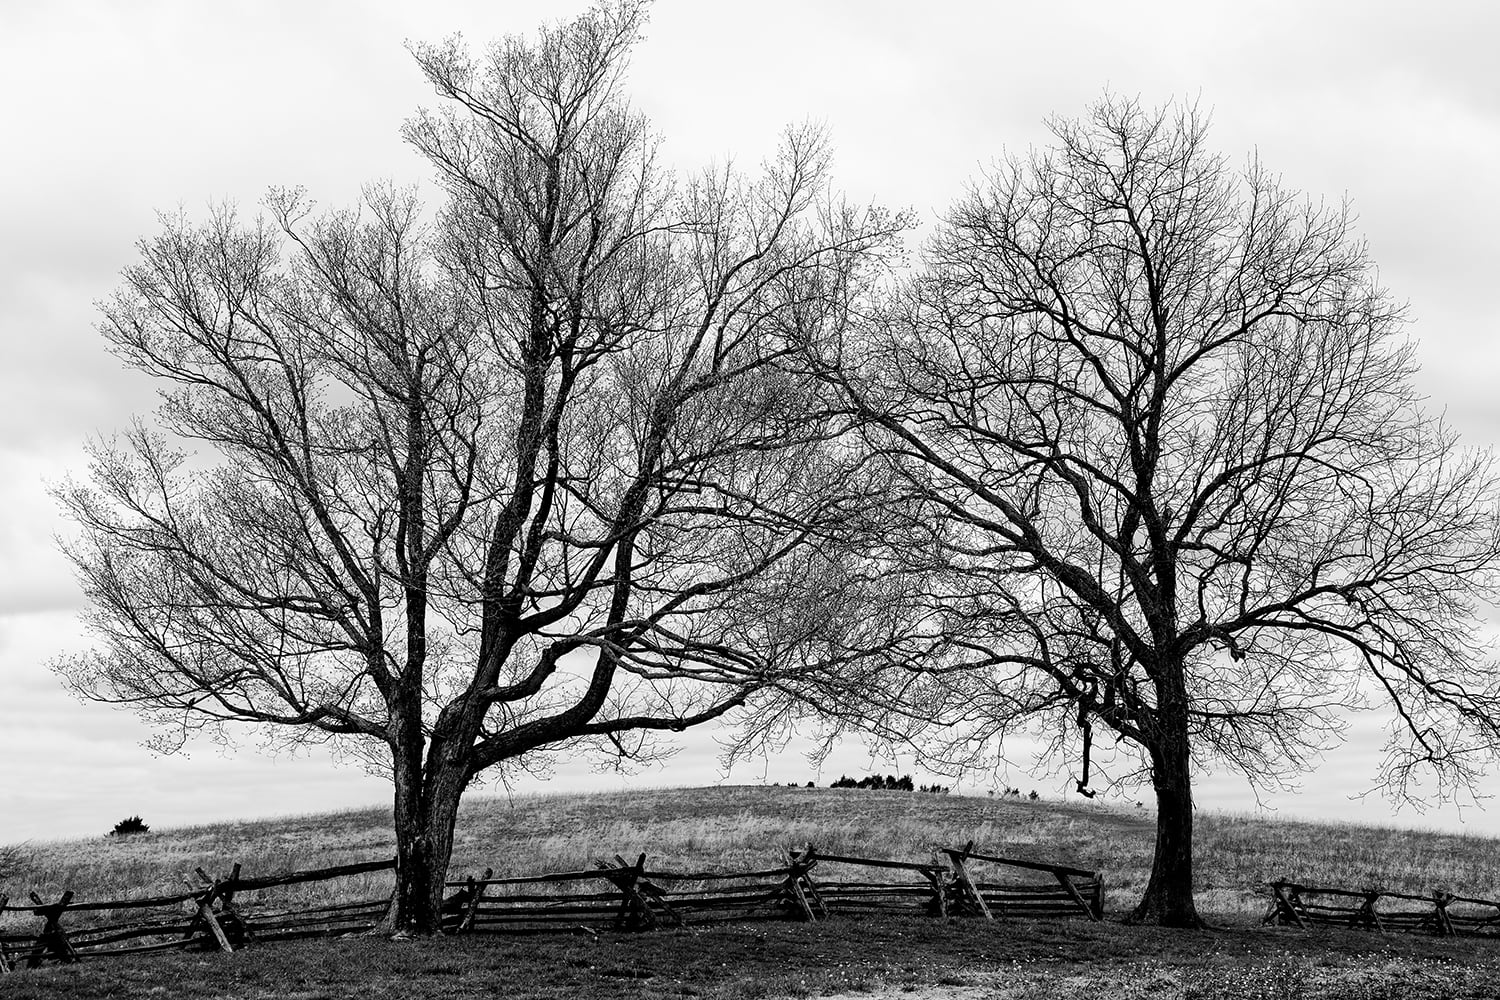 Two Trees and Swollen Earth, a black and white landscape photograph by Keith Dotson